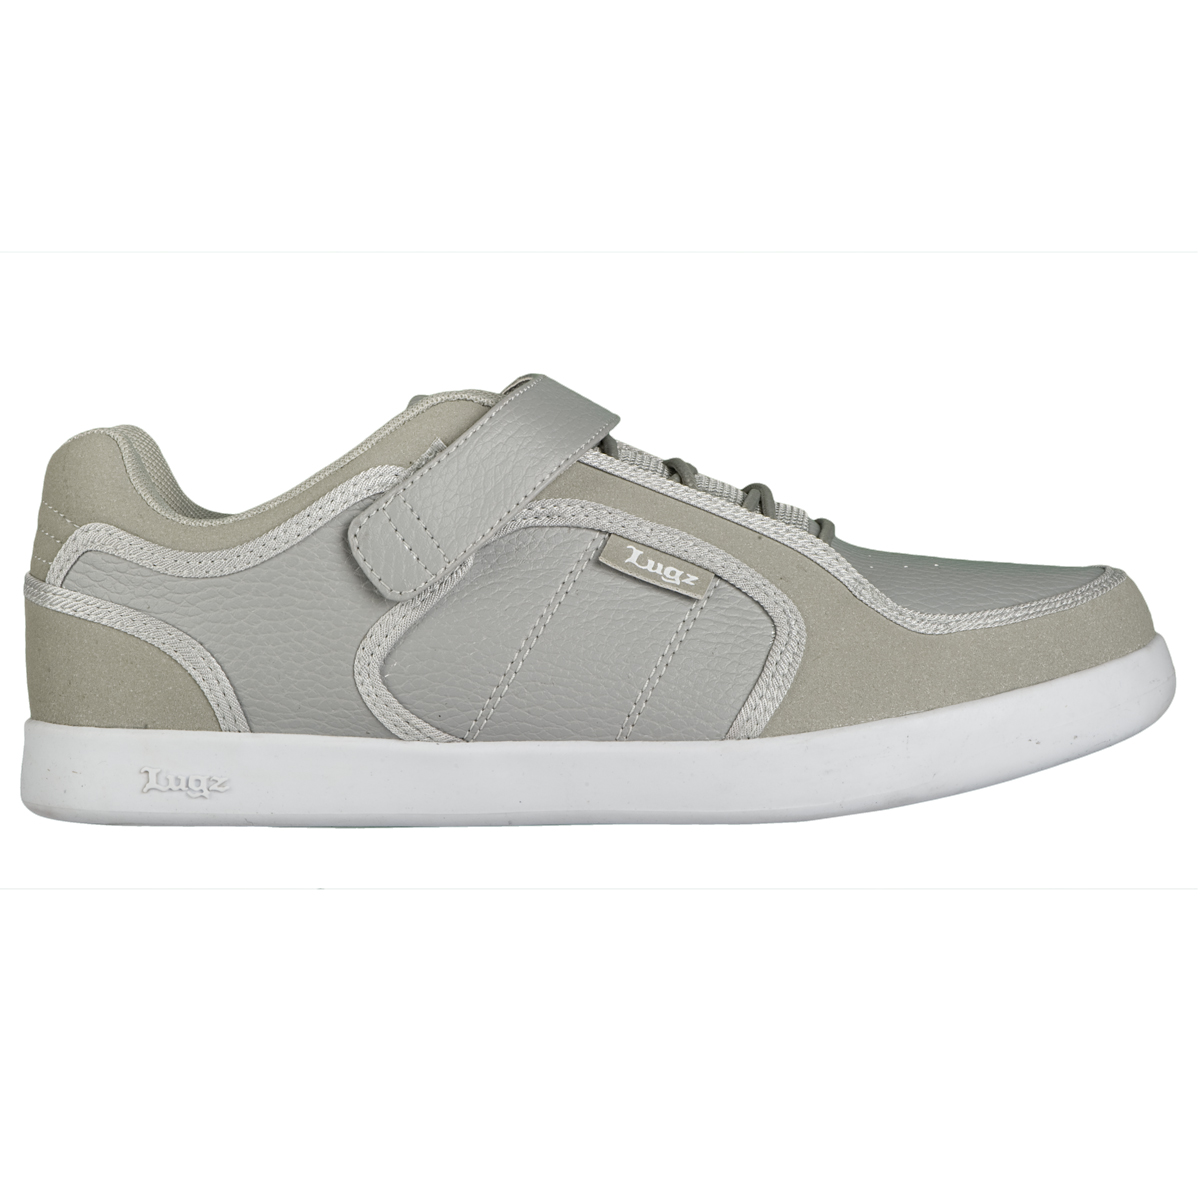 Lugz Slice Mens Sneaker Grey/White